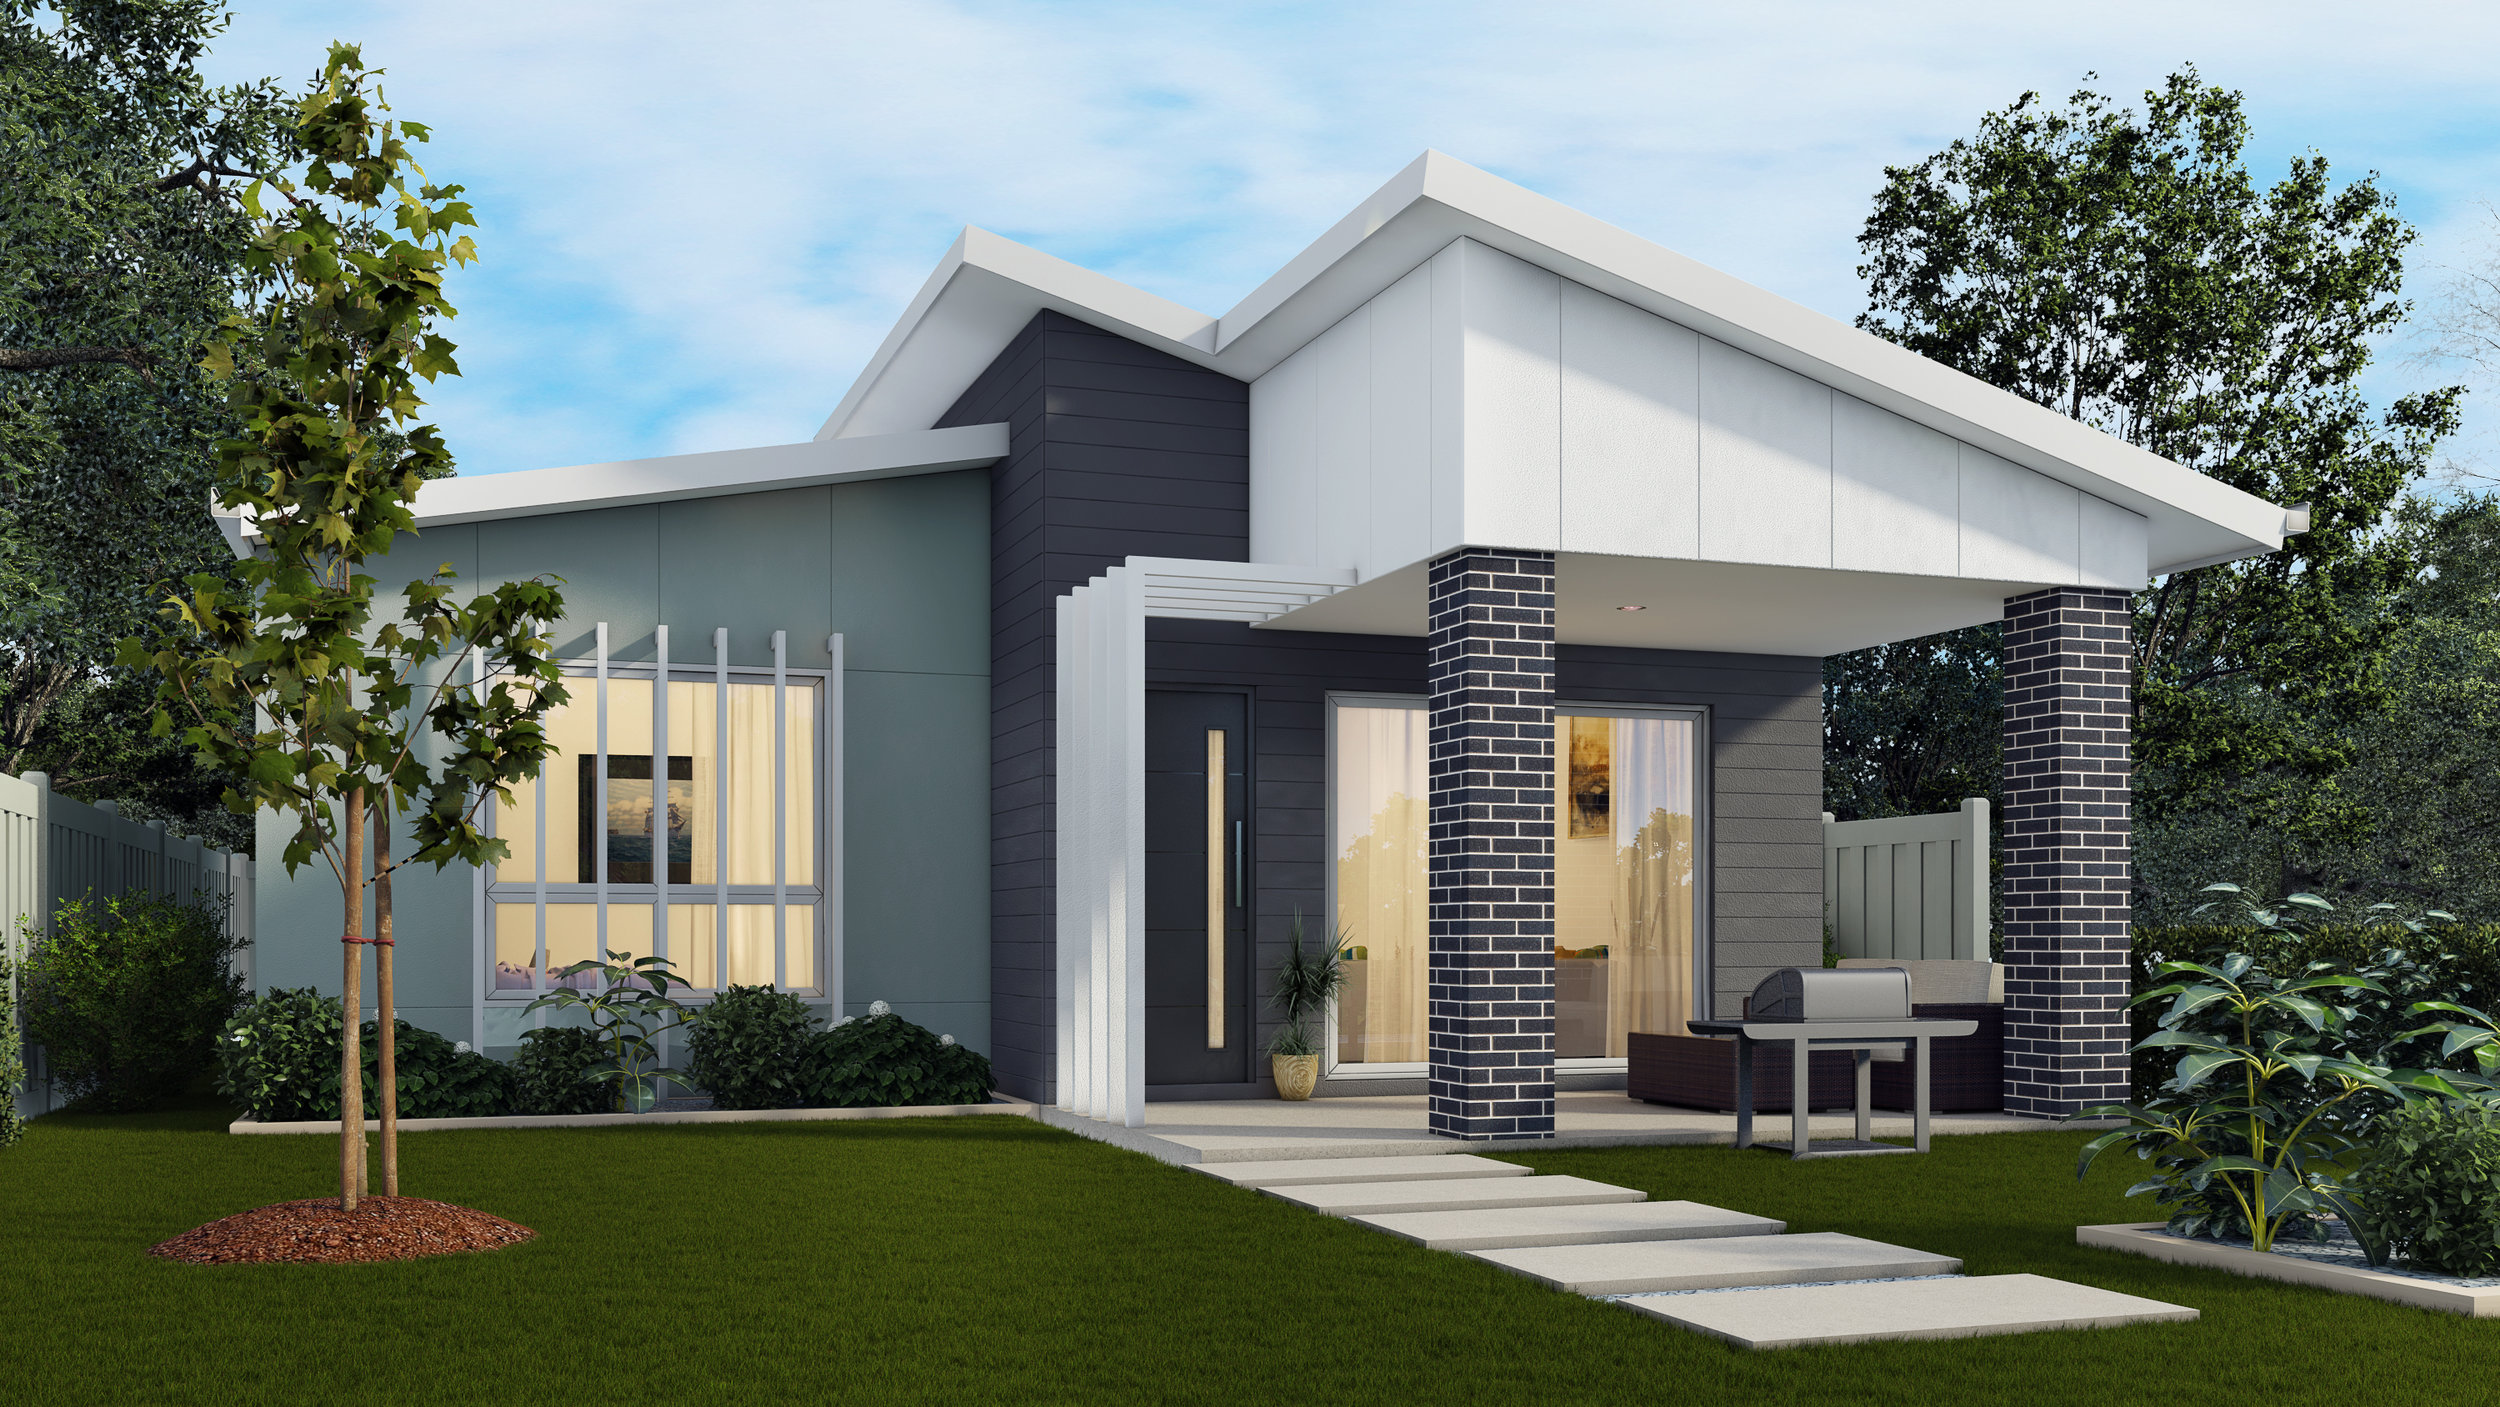 The Entertainer - 4 Bed | 2 Bath | 2 Car Garage8.5m Laneway Lots